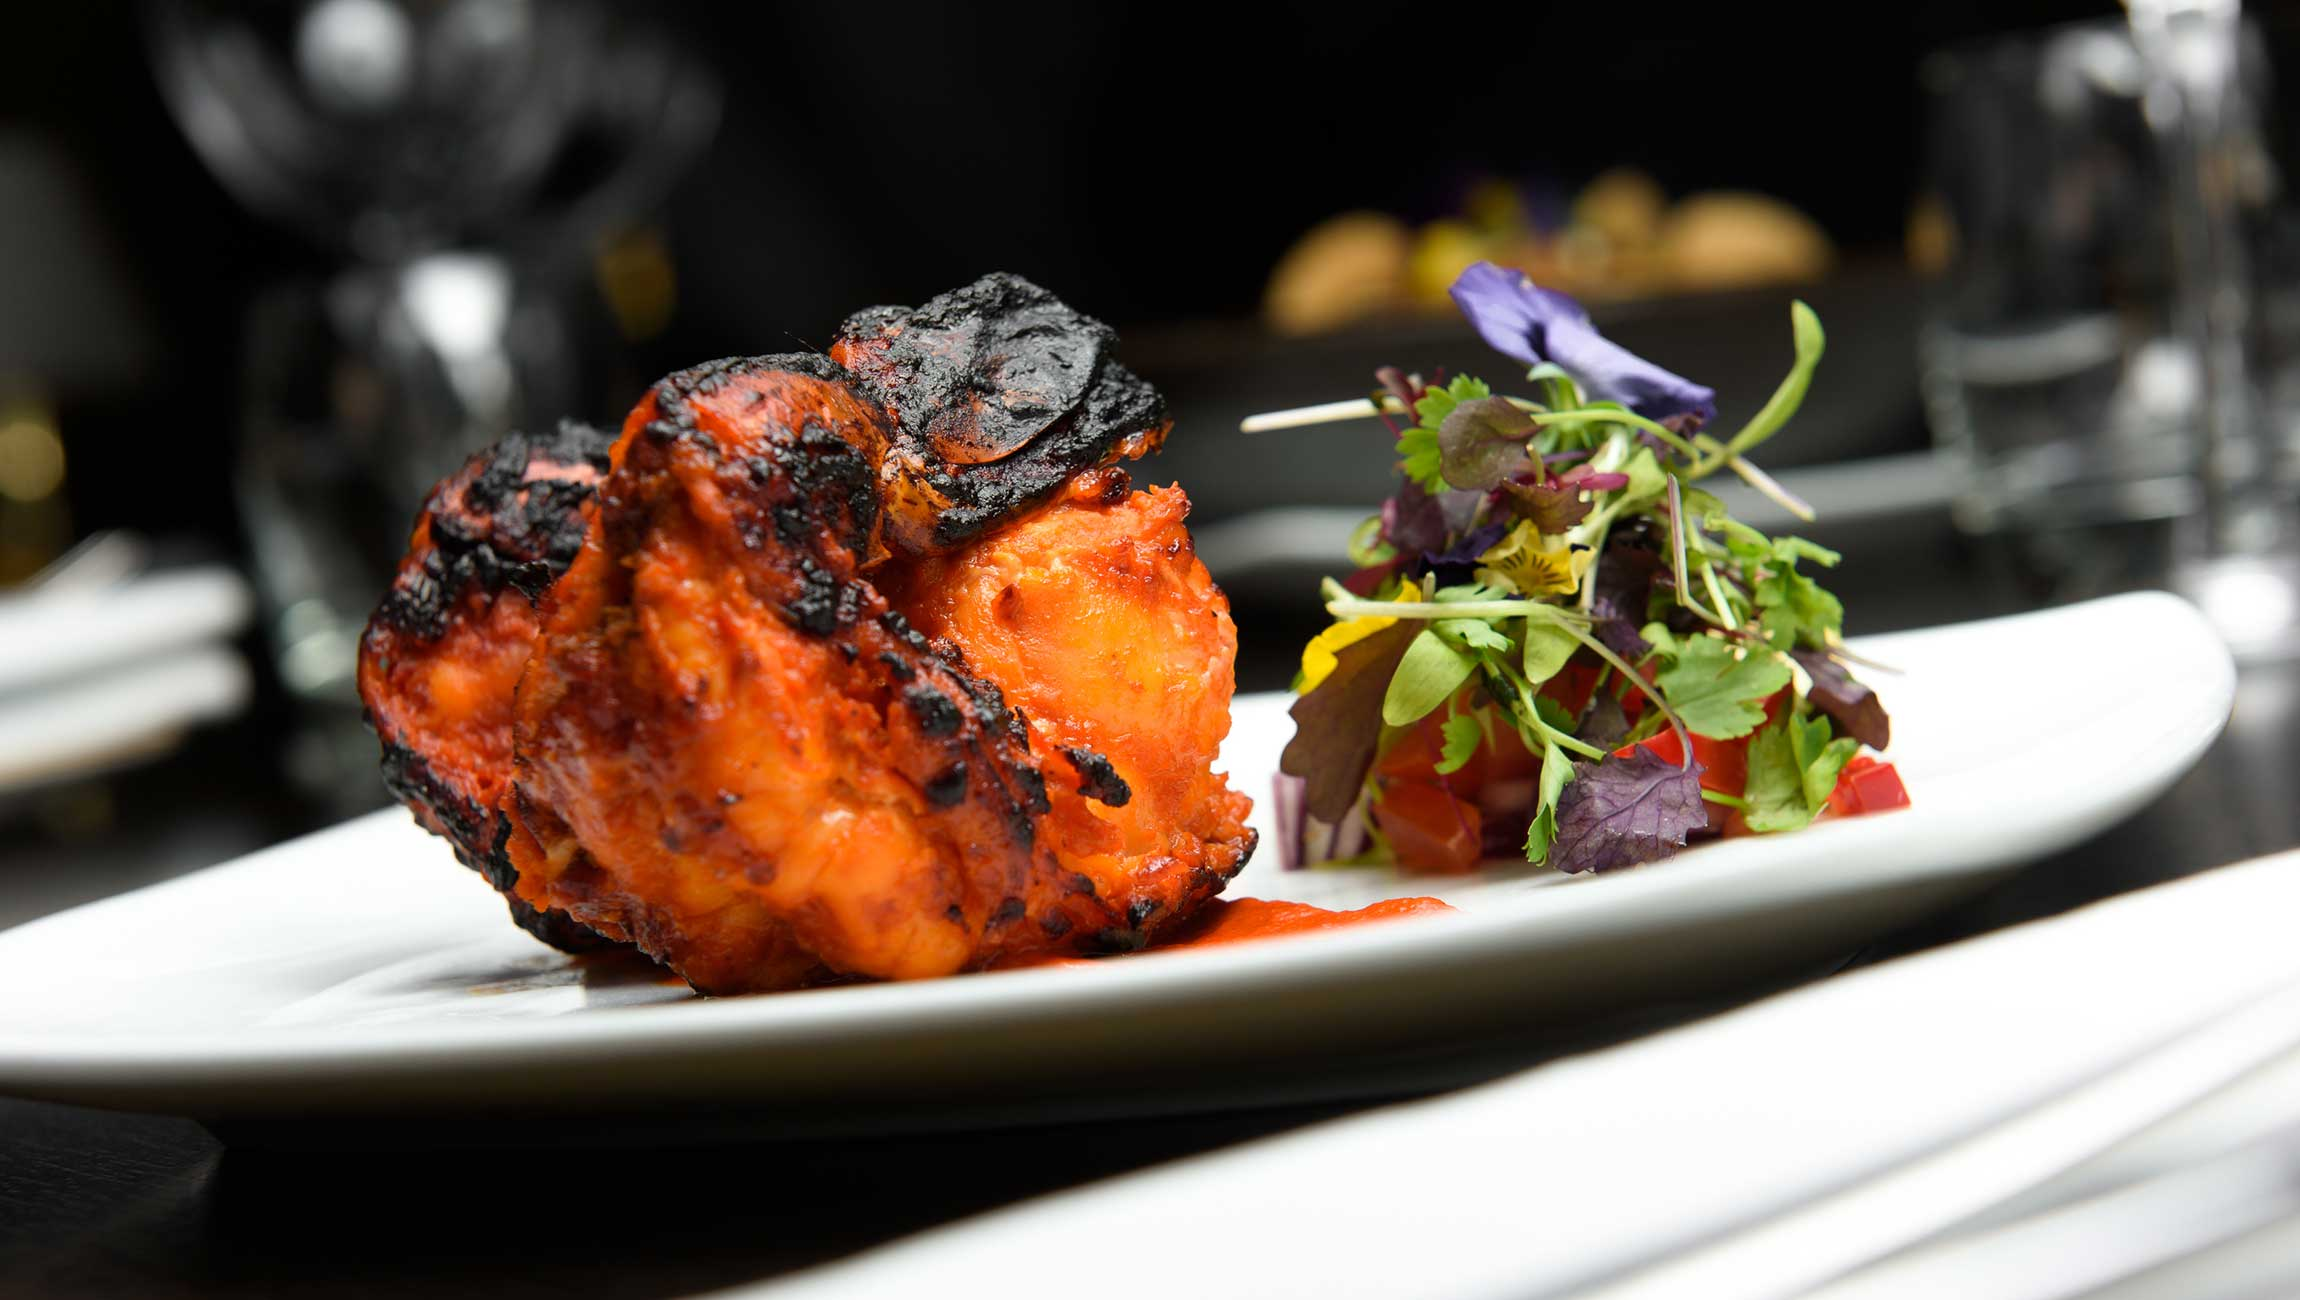 Indian cuisine dish on table with small salad garnish